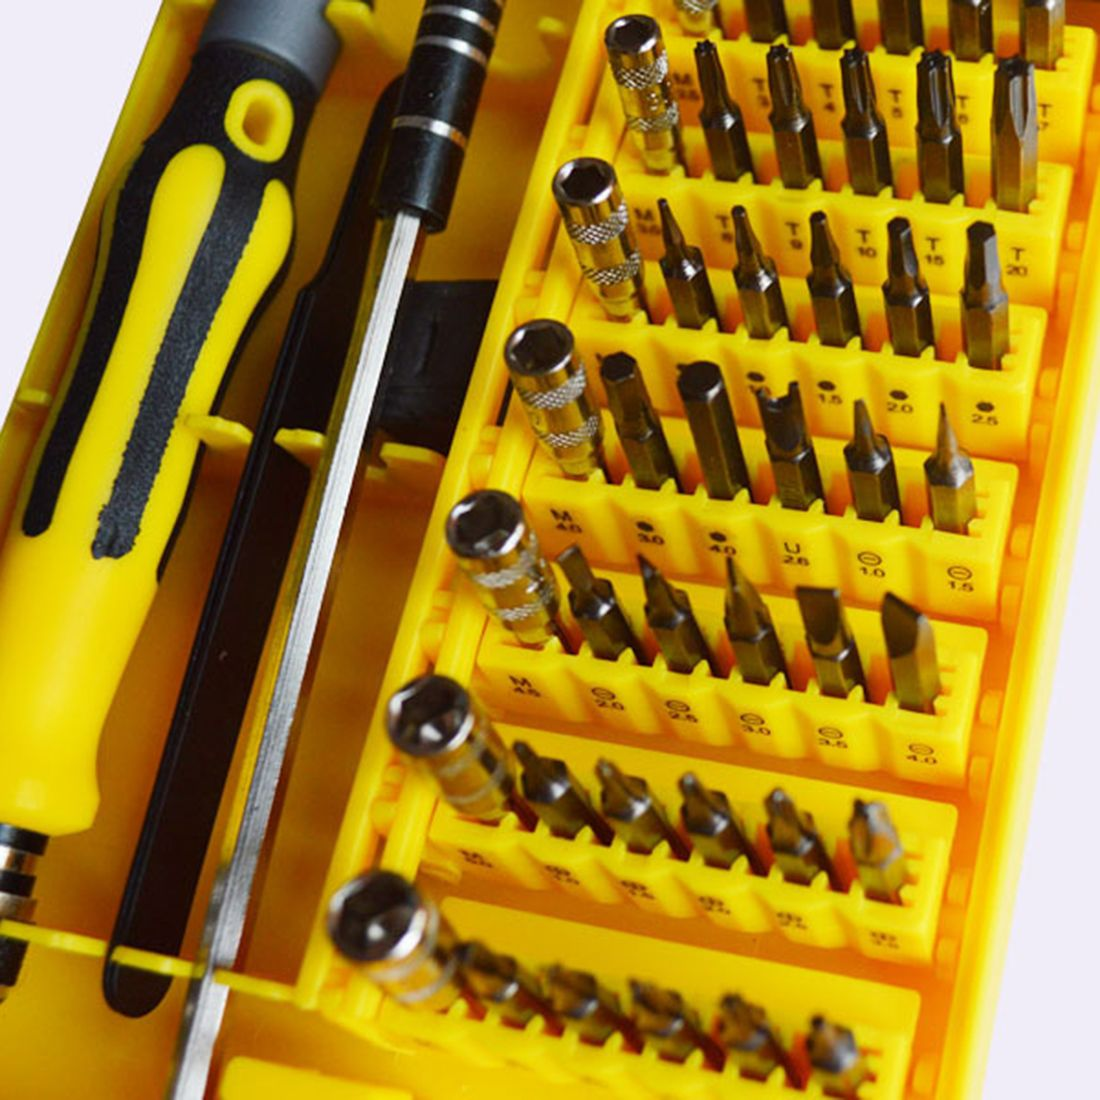 Hot 45 in 1 Professional Torx Screwdriver Set Precision For Watch Computer for iPhone Samsung Smart Phone Repair Dismantle Tools